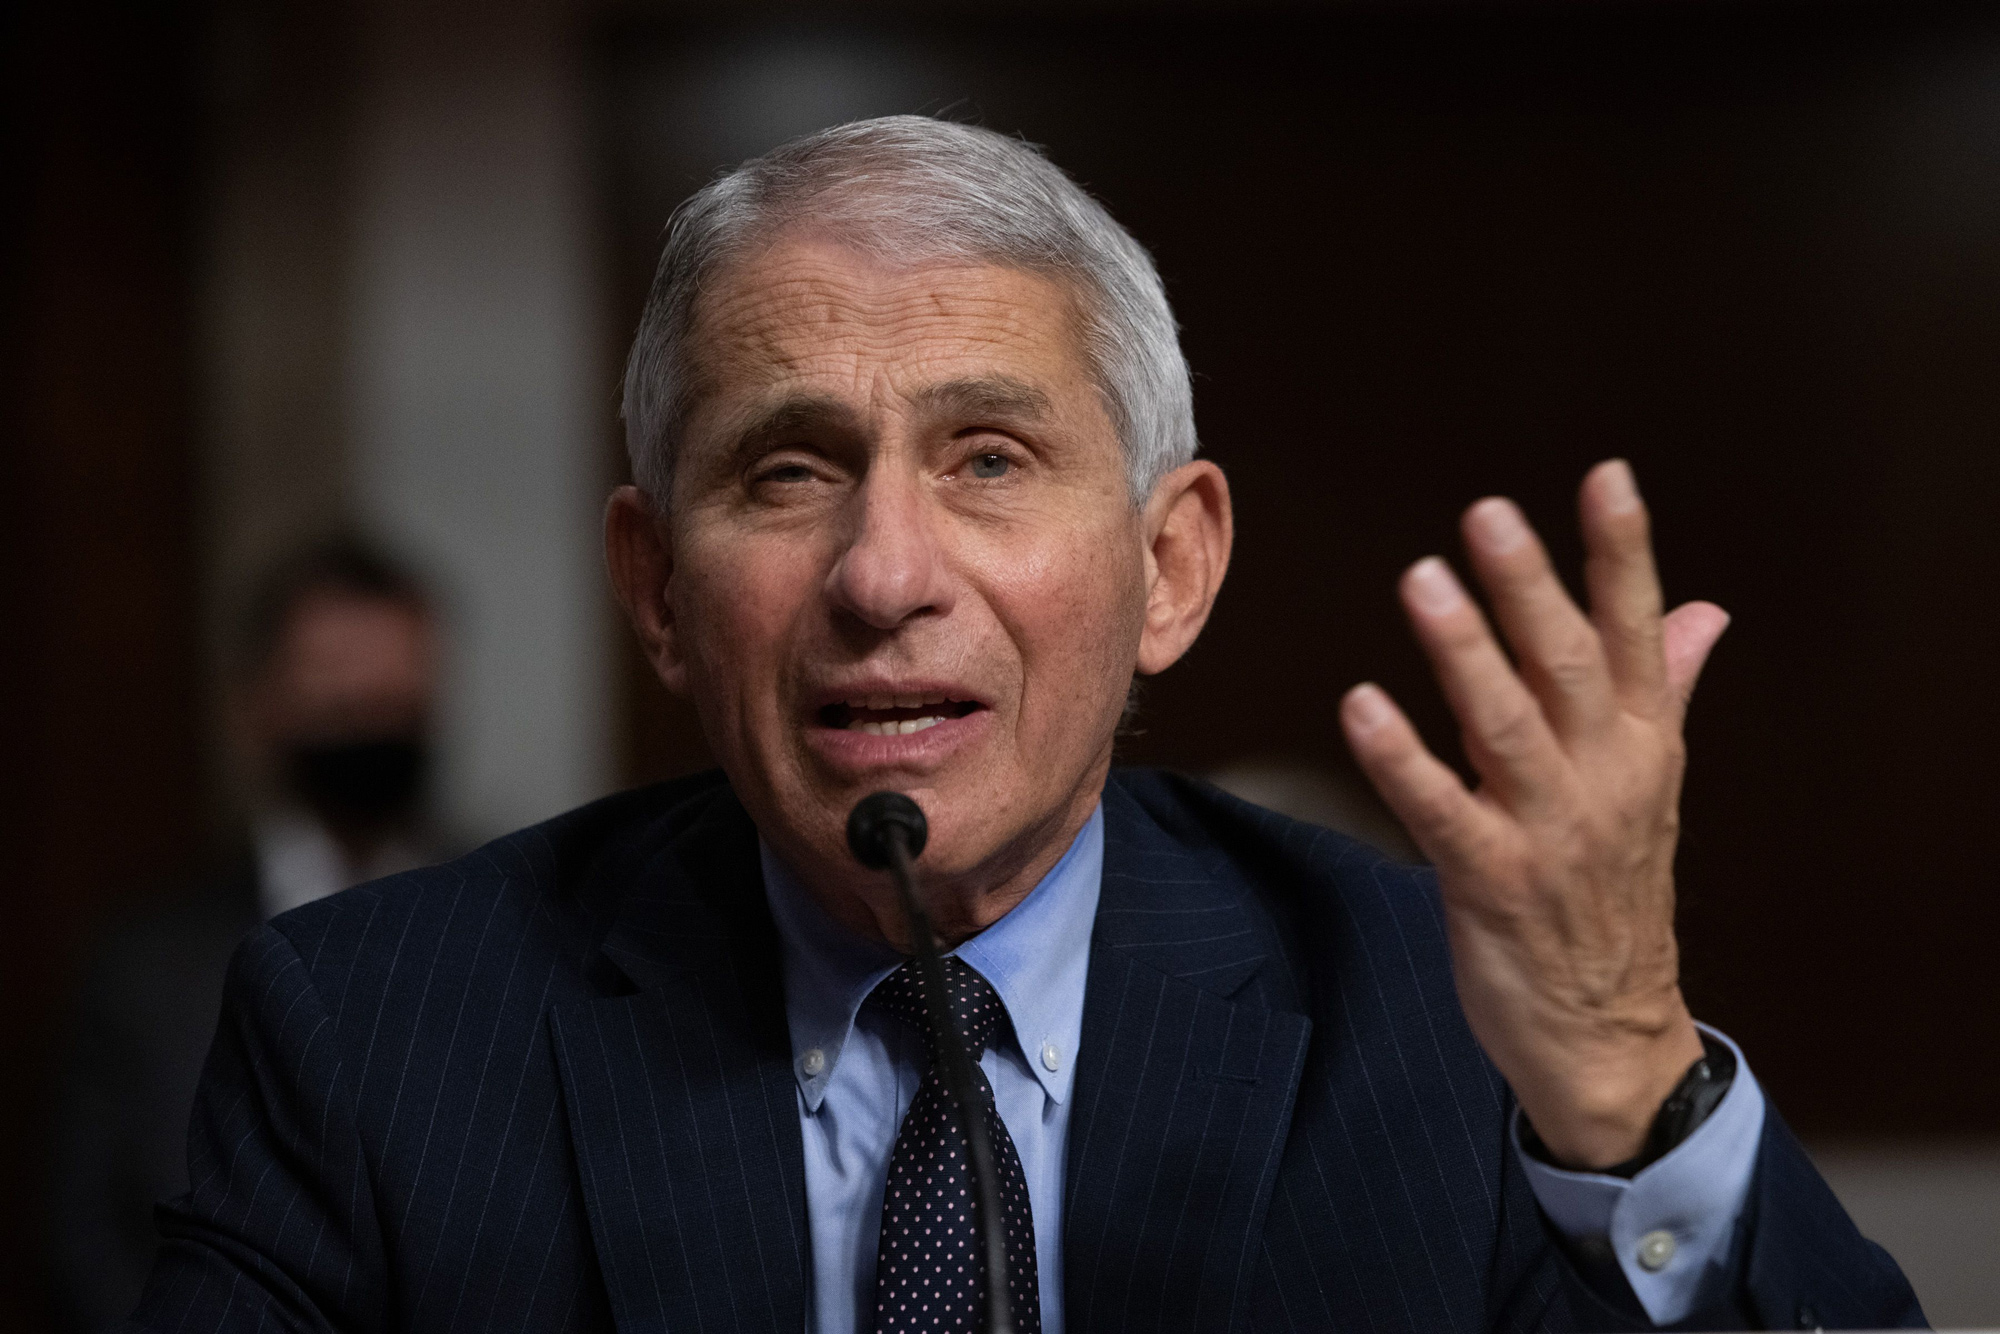 Director of the National Institute of Allergy and Infectious Diseases, Anthony Fauci, testifies during a US Senate Senate Health, Education, Labor, and Pensions Committee hearing in Washington, DC, on September 23.